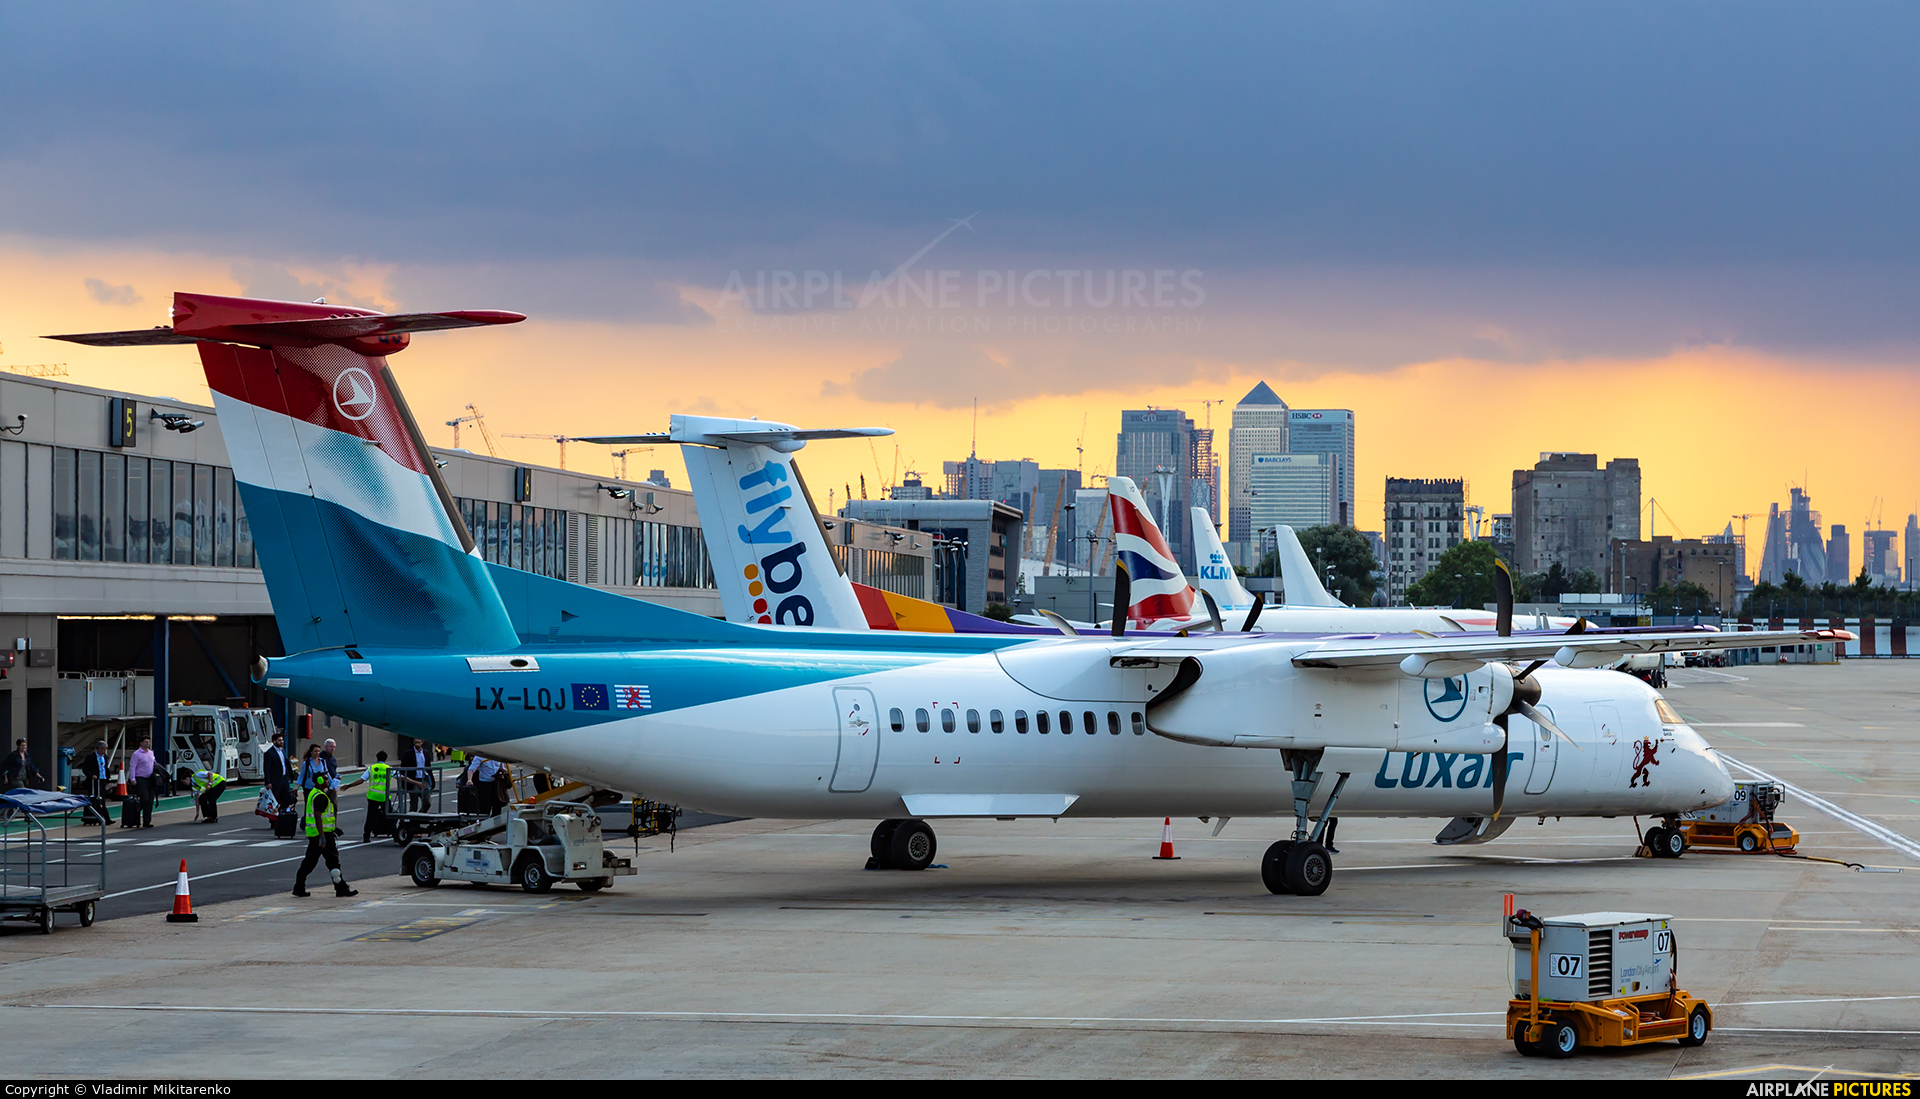 Luxair LX-LQJ               aircraft at London - City